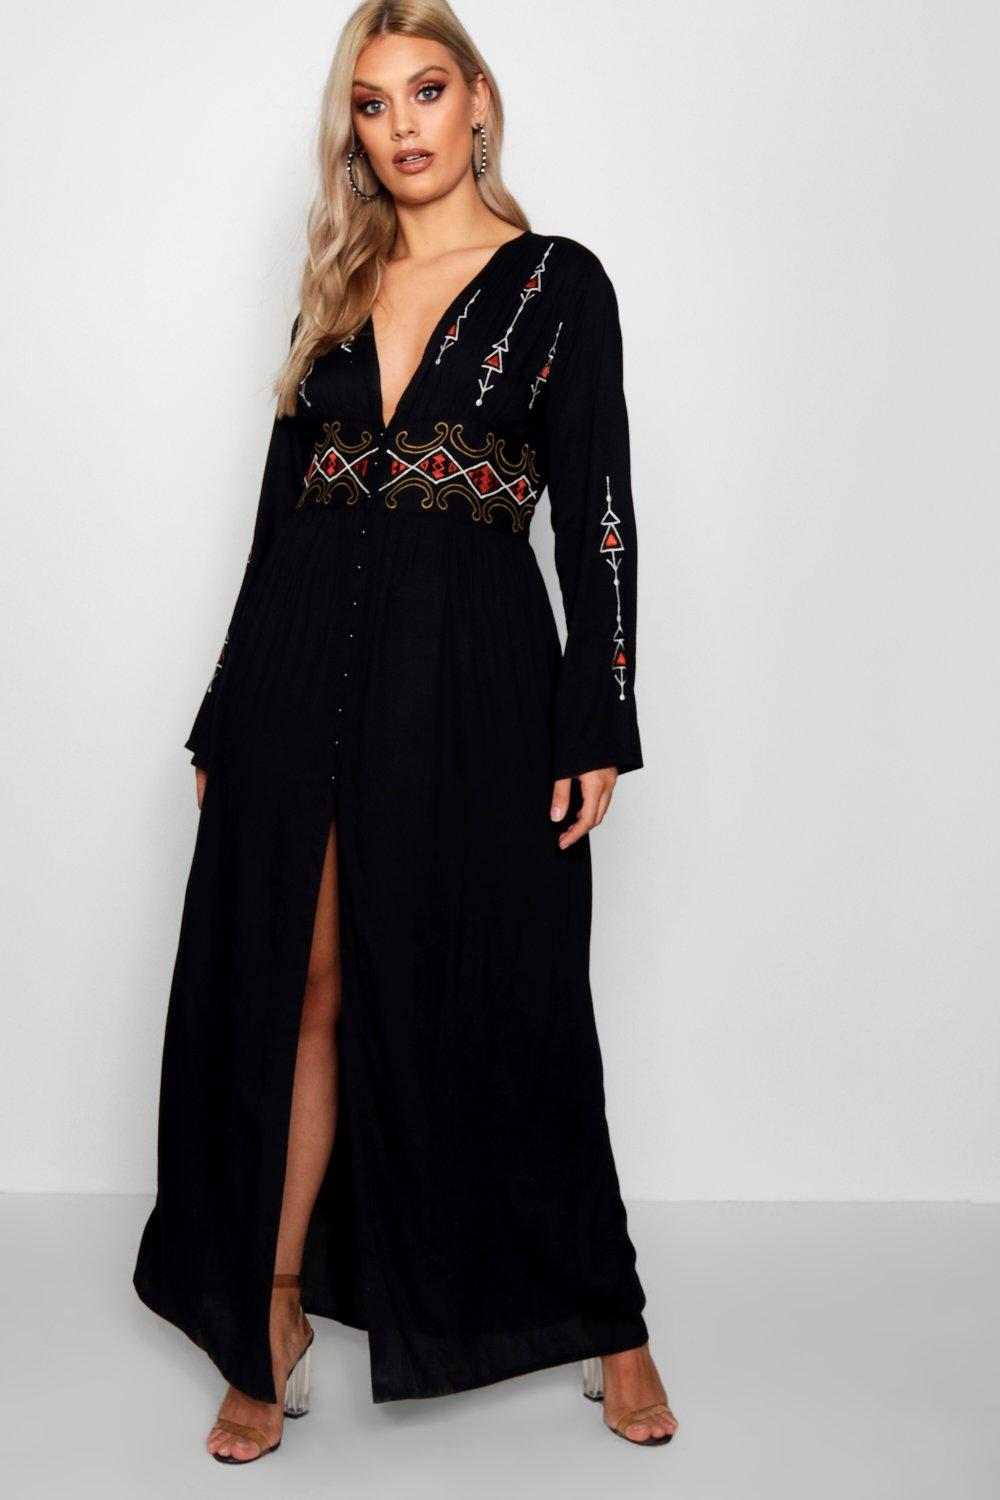 70s Disco Fashion: Disco Clothes, Outfits for Girls Womens Plus Embroidered Plunge Maxi Dress - Black - 16 $22.50 AT vintagedancer.com